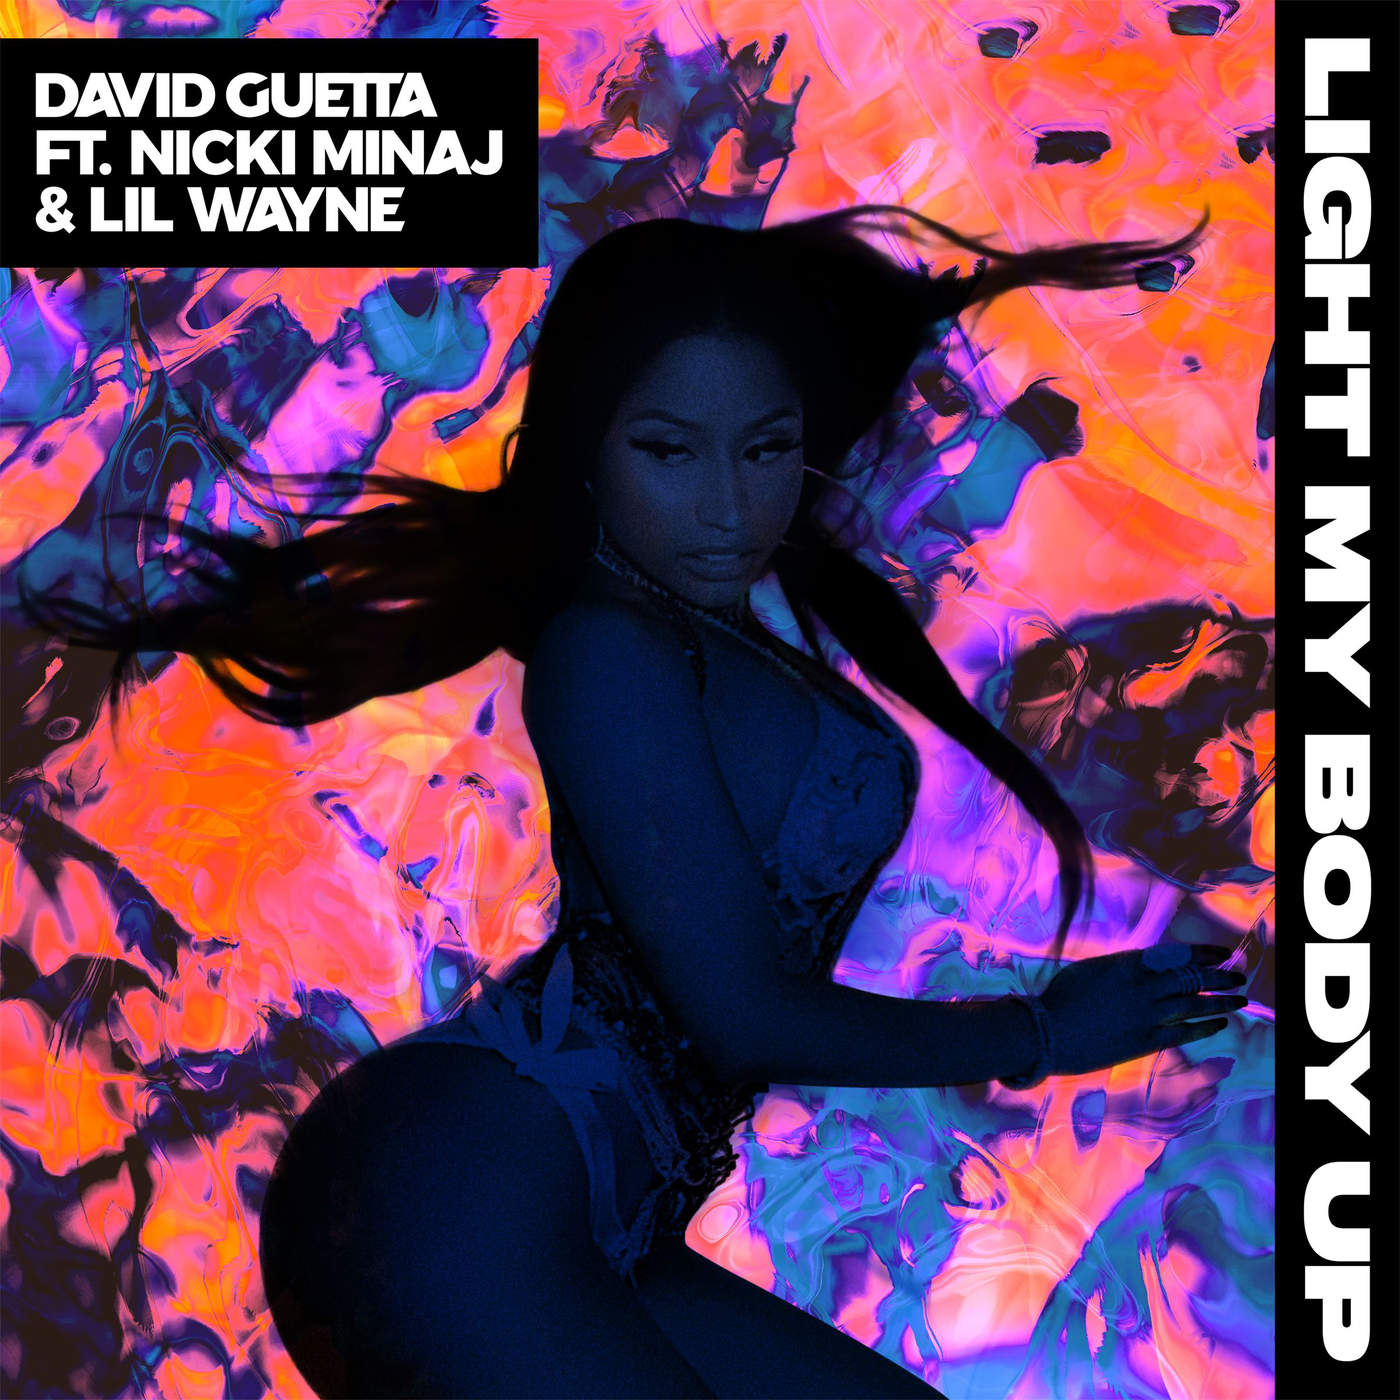 David Guetta - Light My Body Up (feat. Nicki Minaj & Lil Wayne) - Single Cover